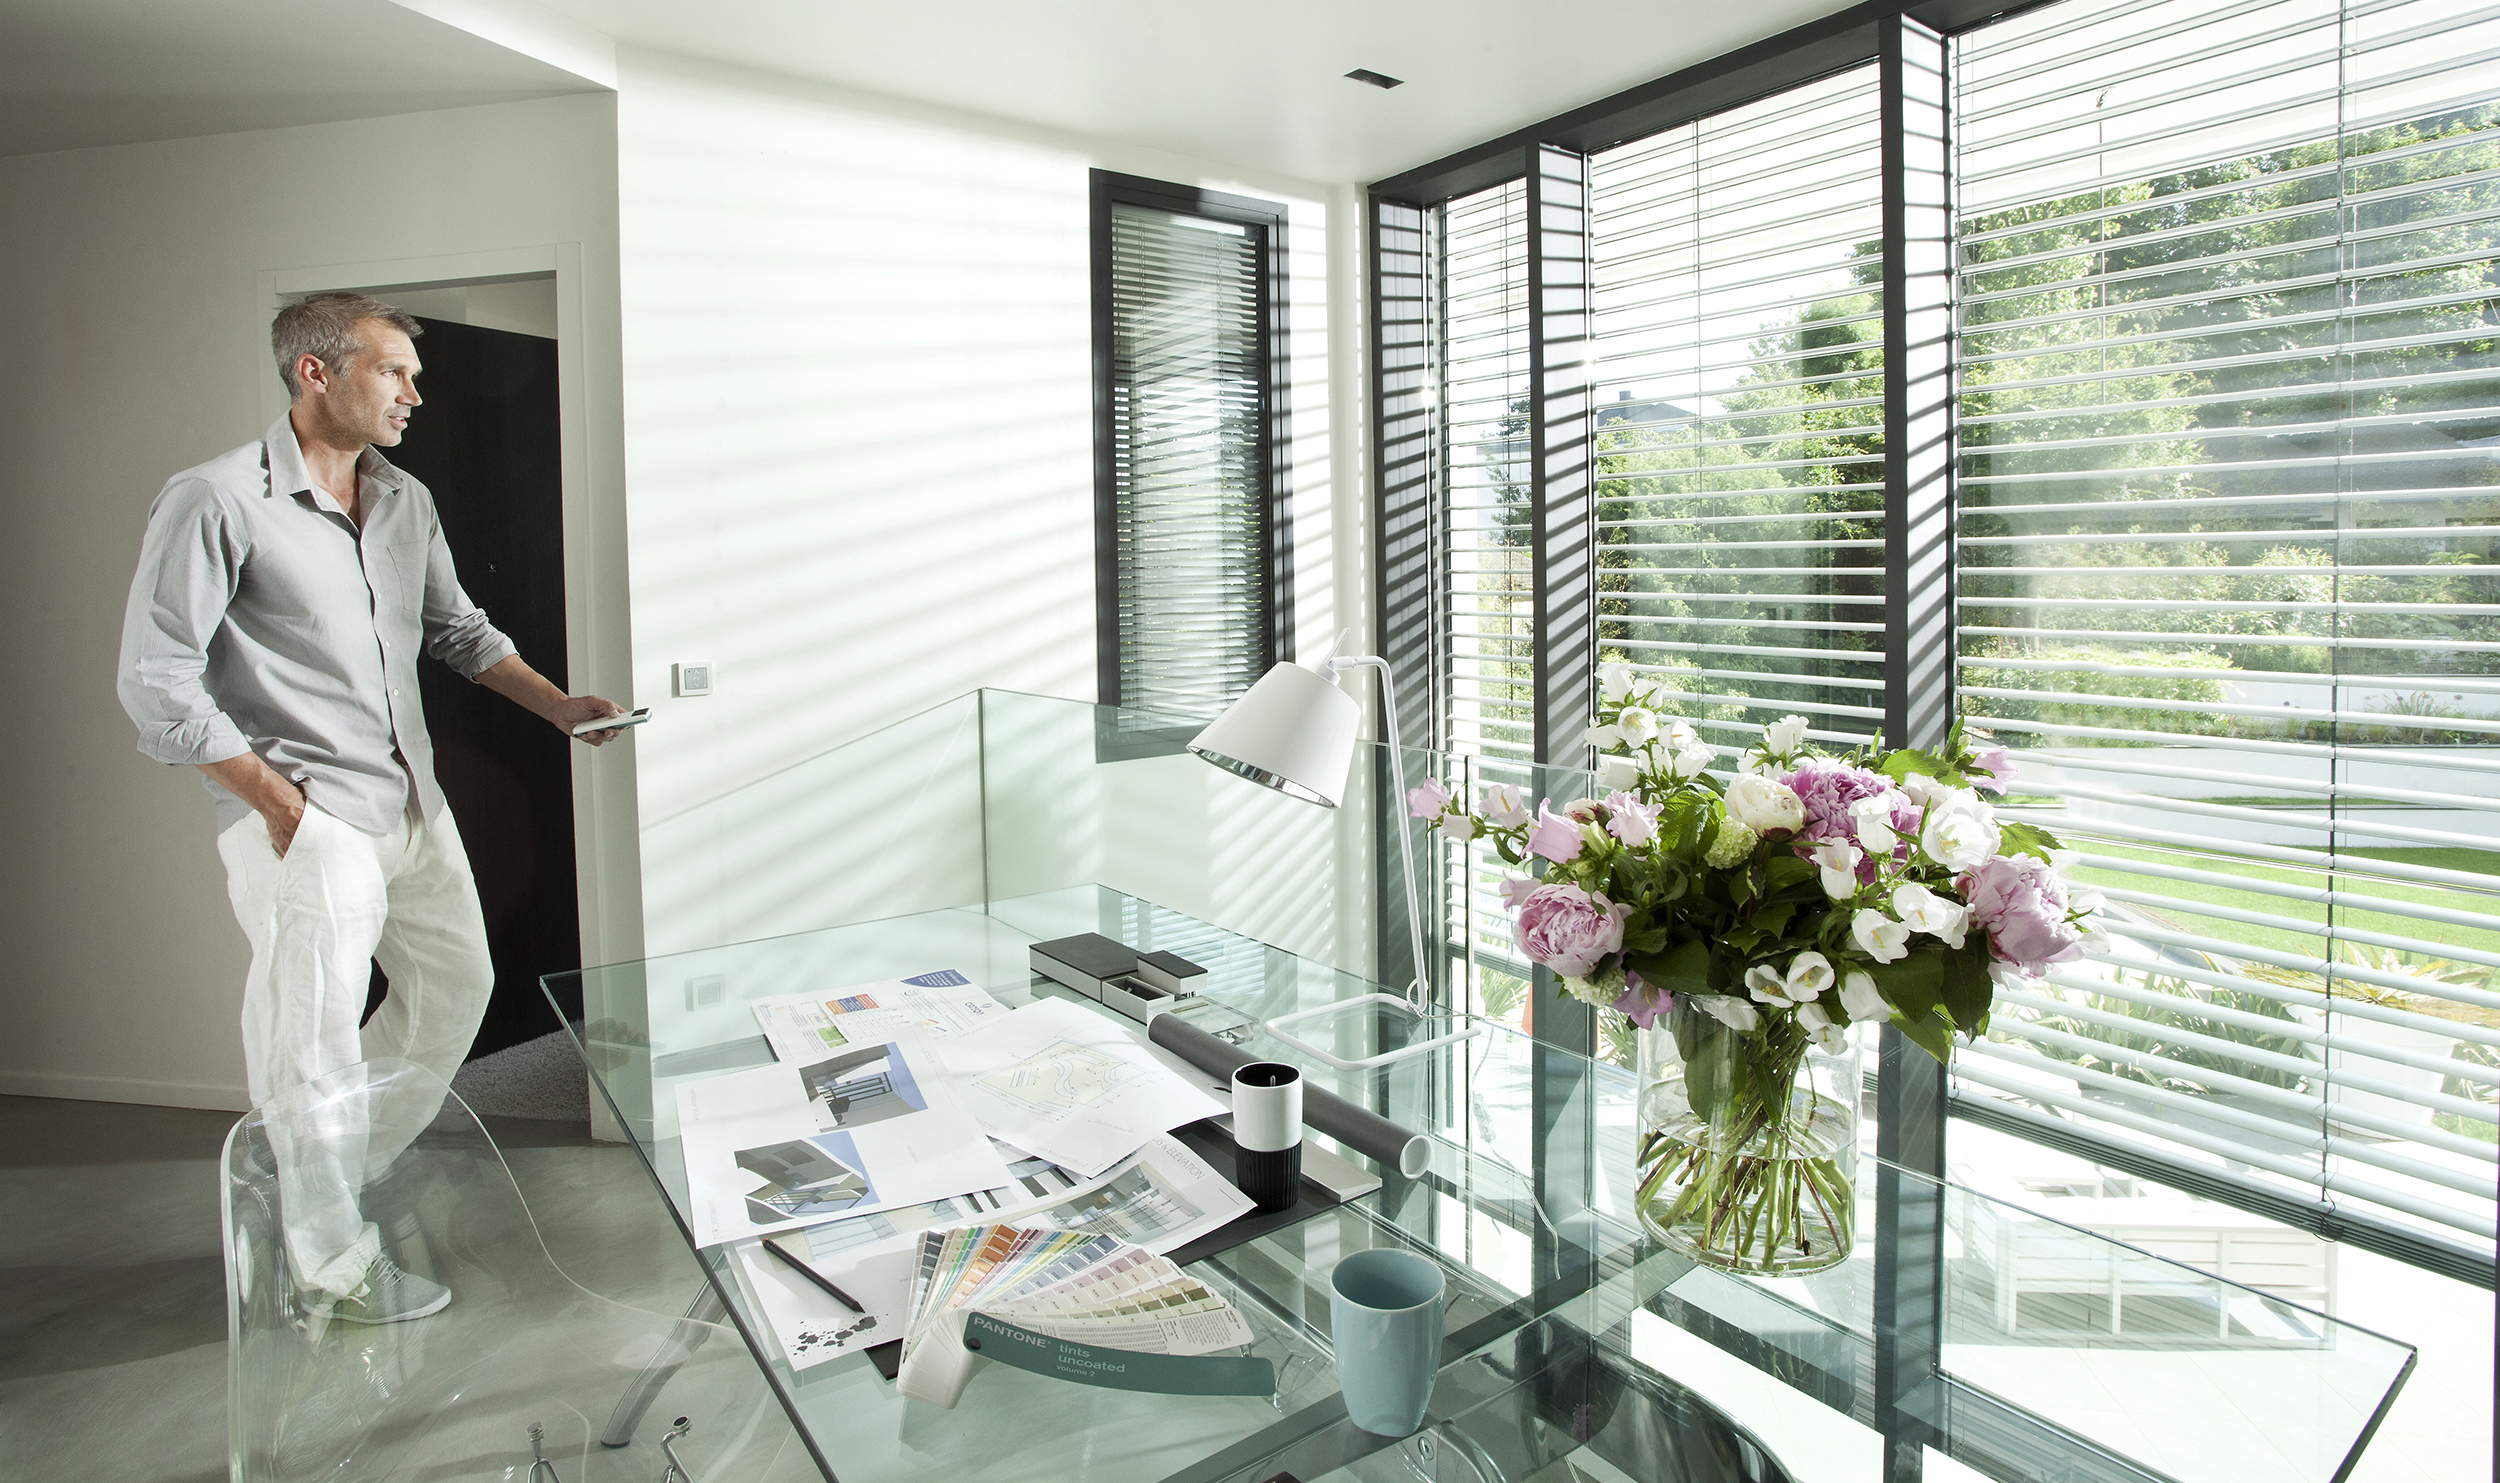 Motorised Blinds - Somfy Motorised Blinds Glasgow